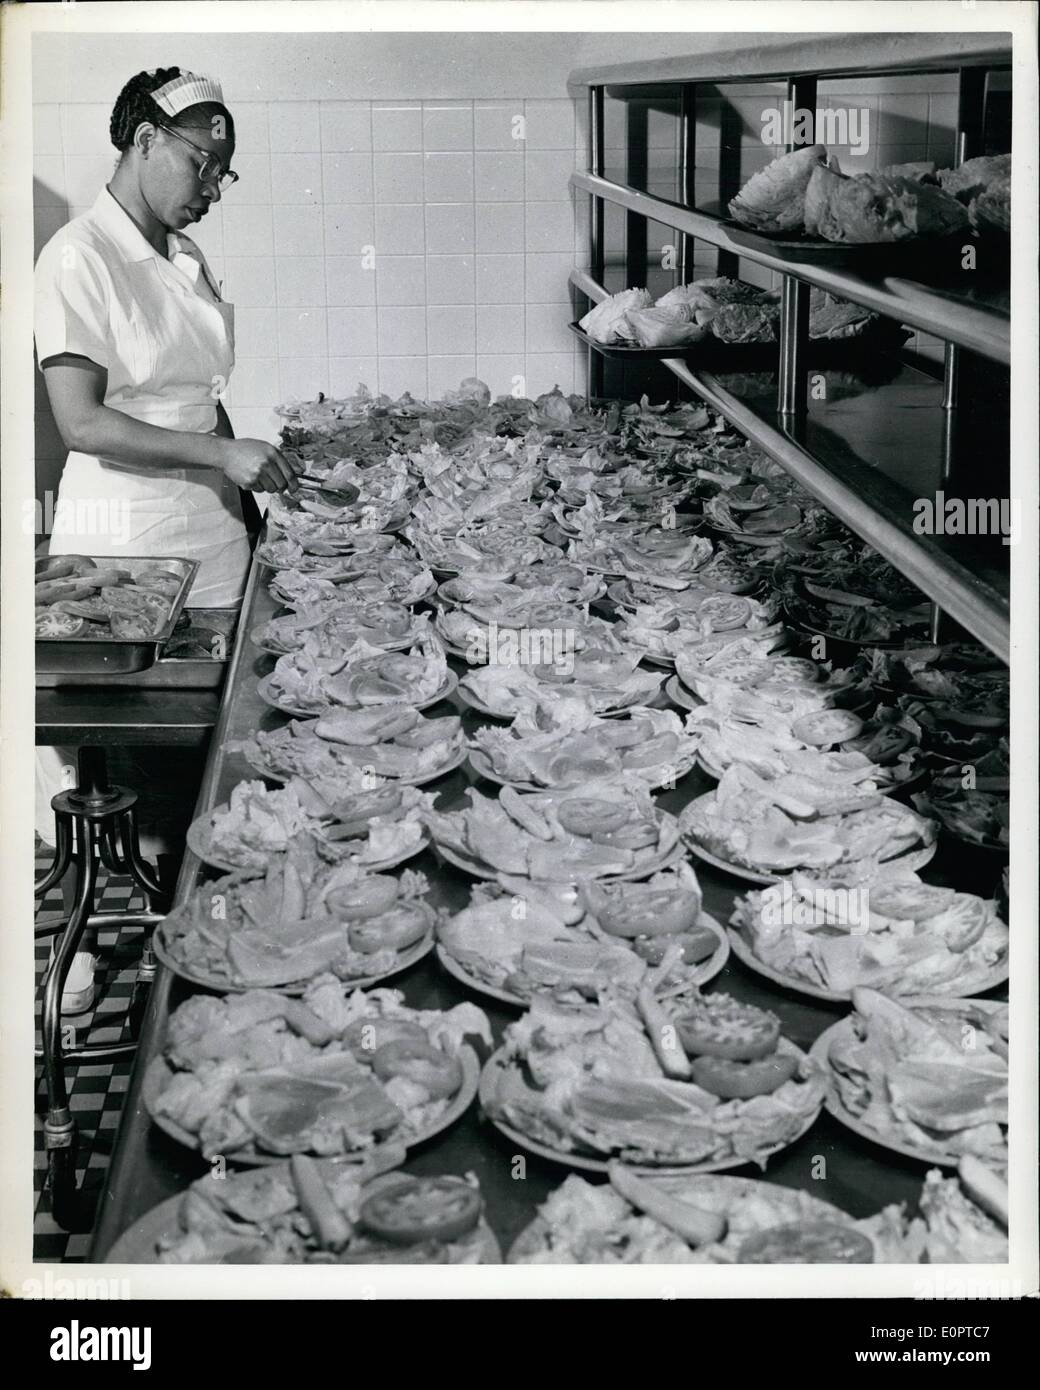 Feb. 02, 1957 - The Pentagon, nerve Center Of Defense: Approximately 675 persons are required to operate the pentagon's two restaurants, six cafeterias, nine beverage bars and outdoor snak bar. a kitchen worker is shown prepare salads for a noonday meal. - Stock Image